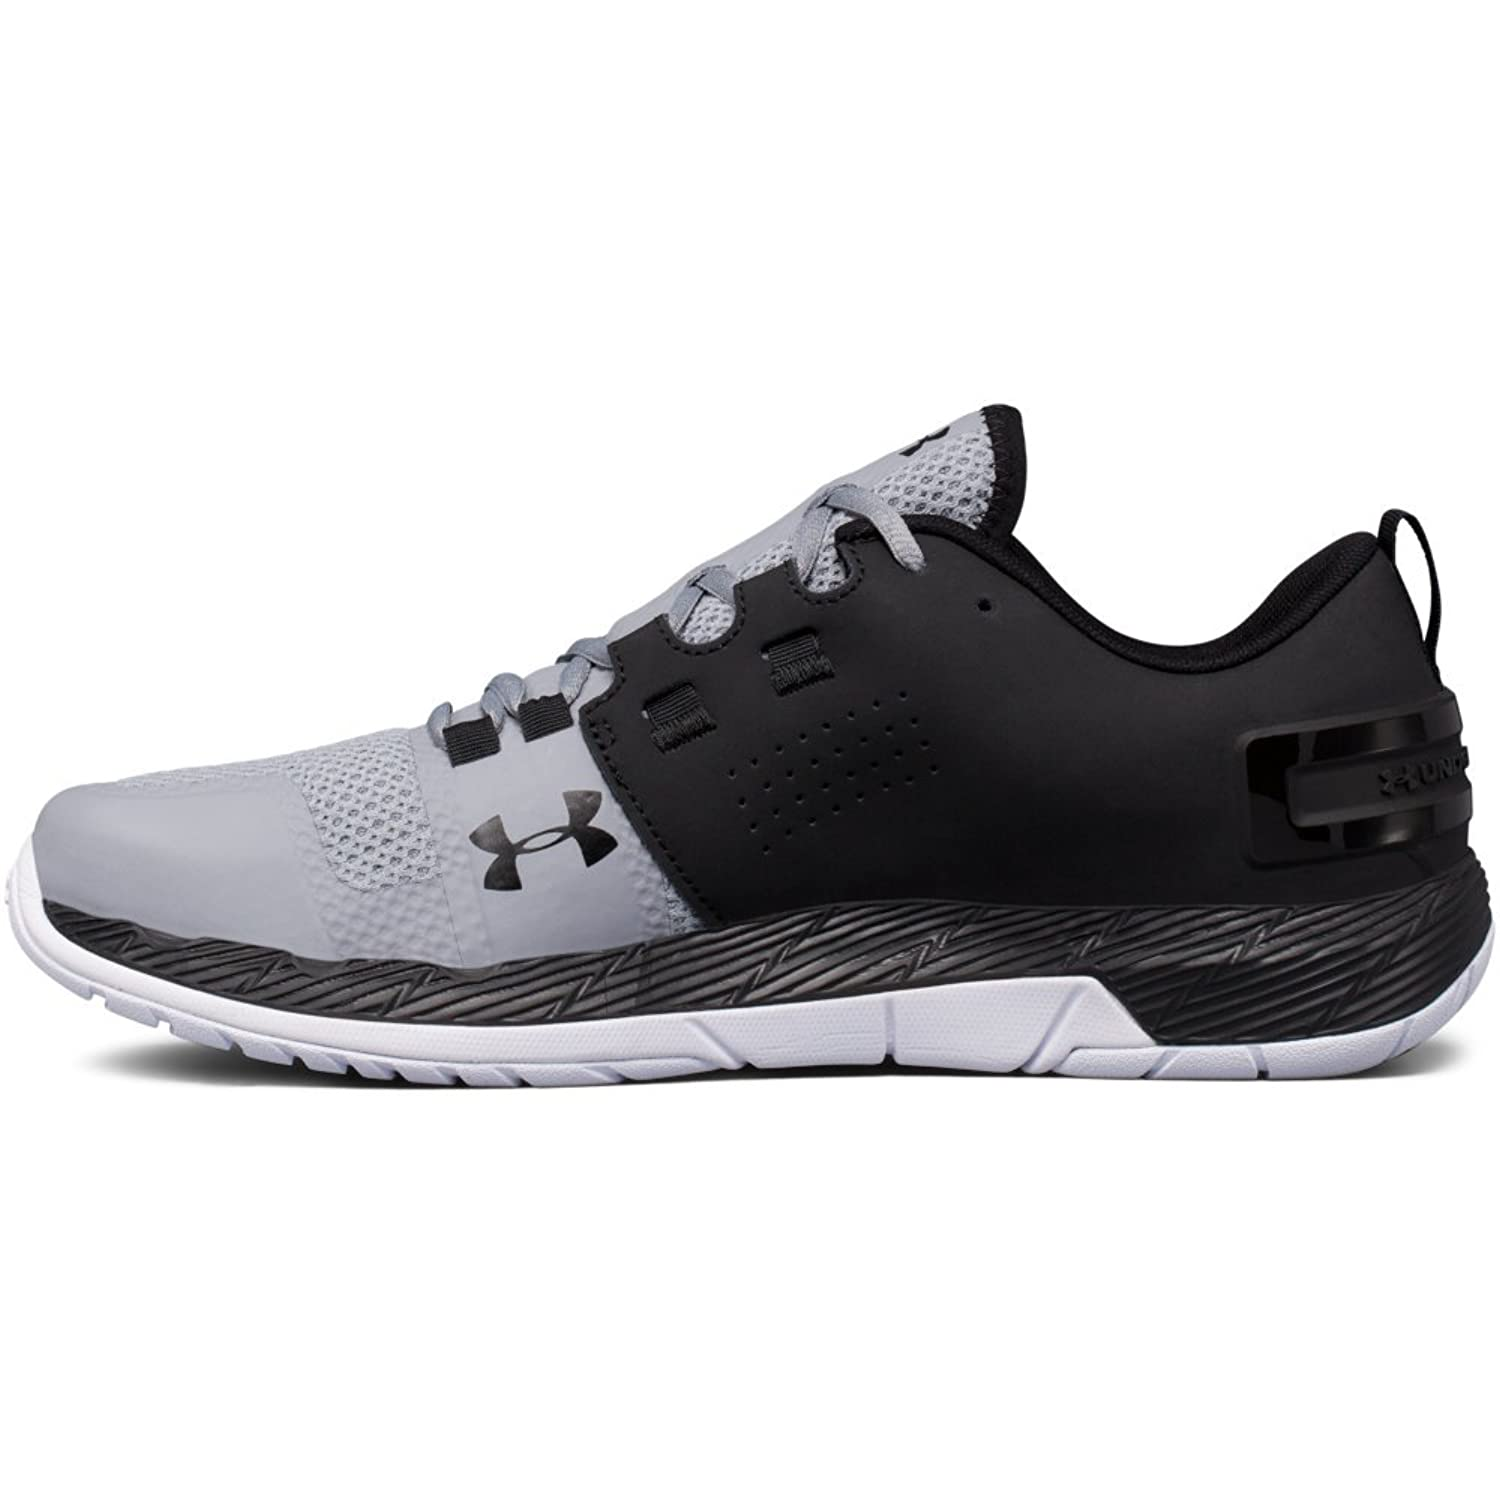 Under Armour Commit Men's ... Training Shoes from china free shipping buy cheap lowest price free shipping nicekicks clearance under $60 w9p7r2uK